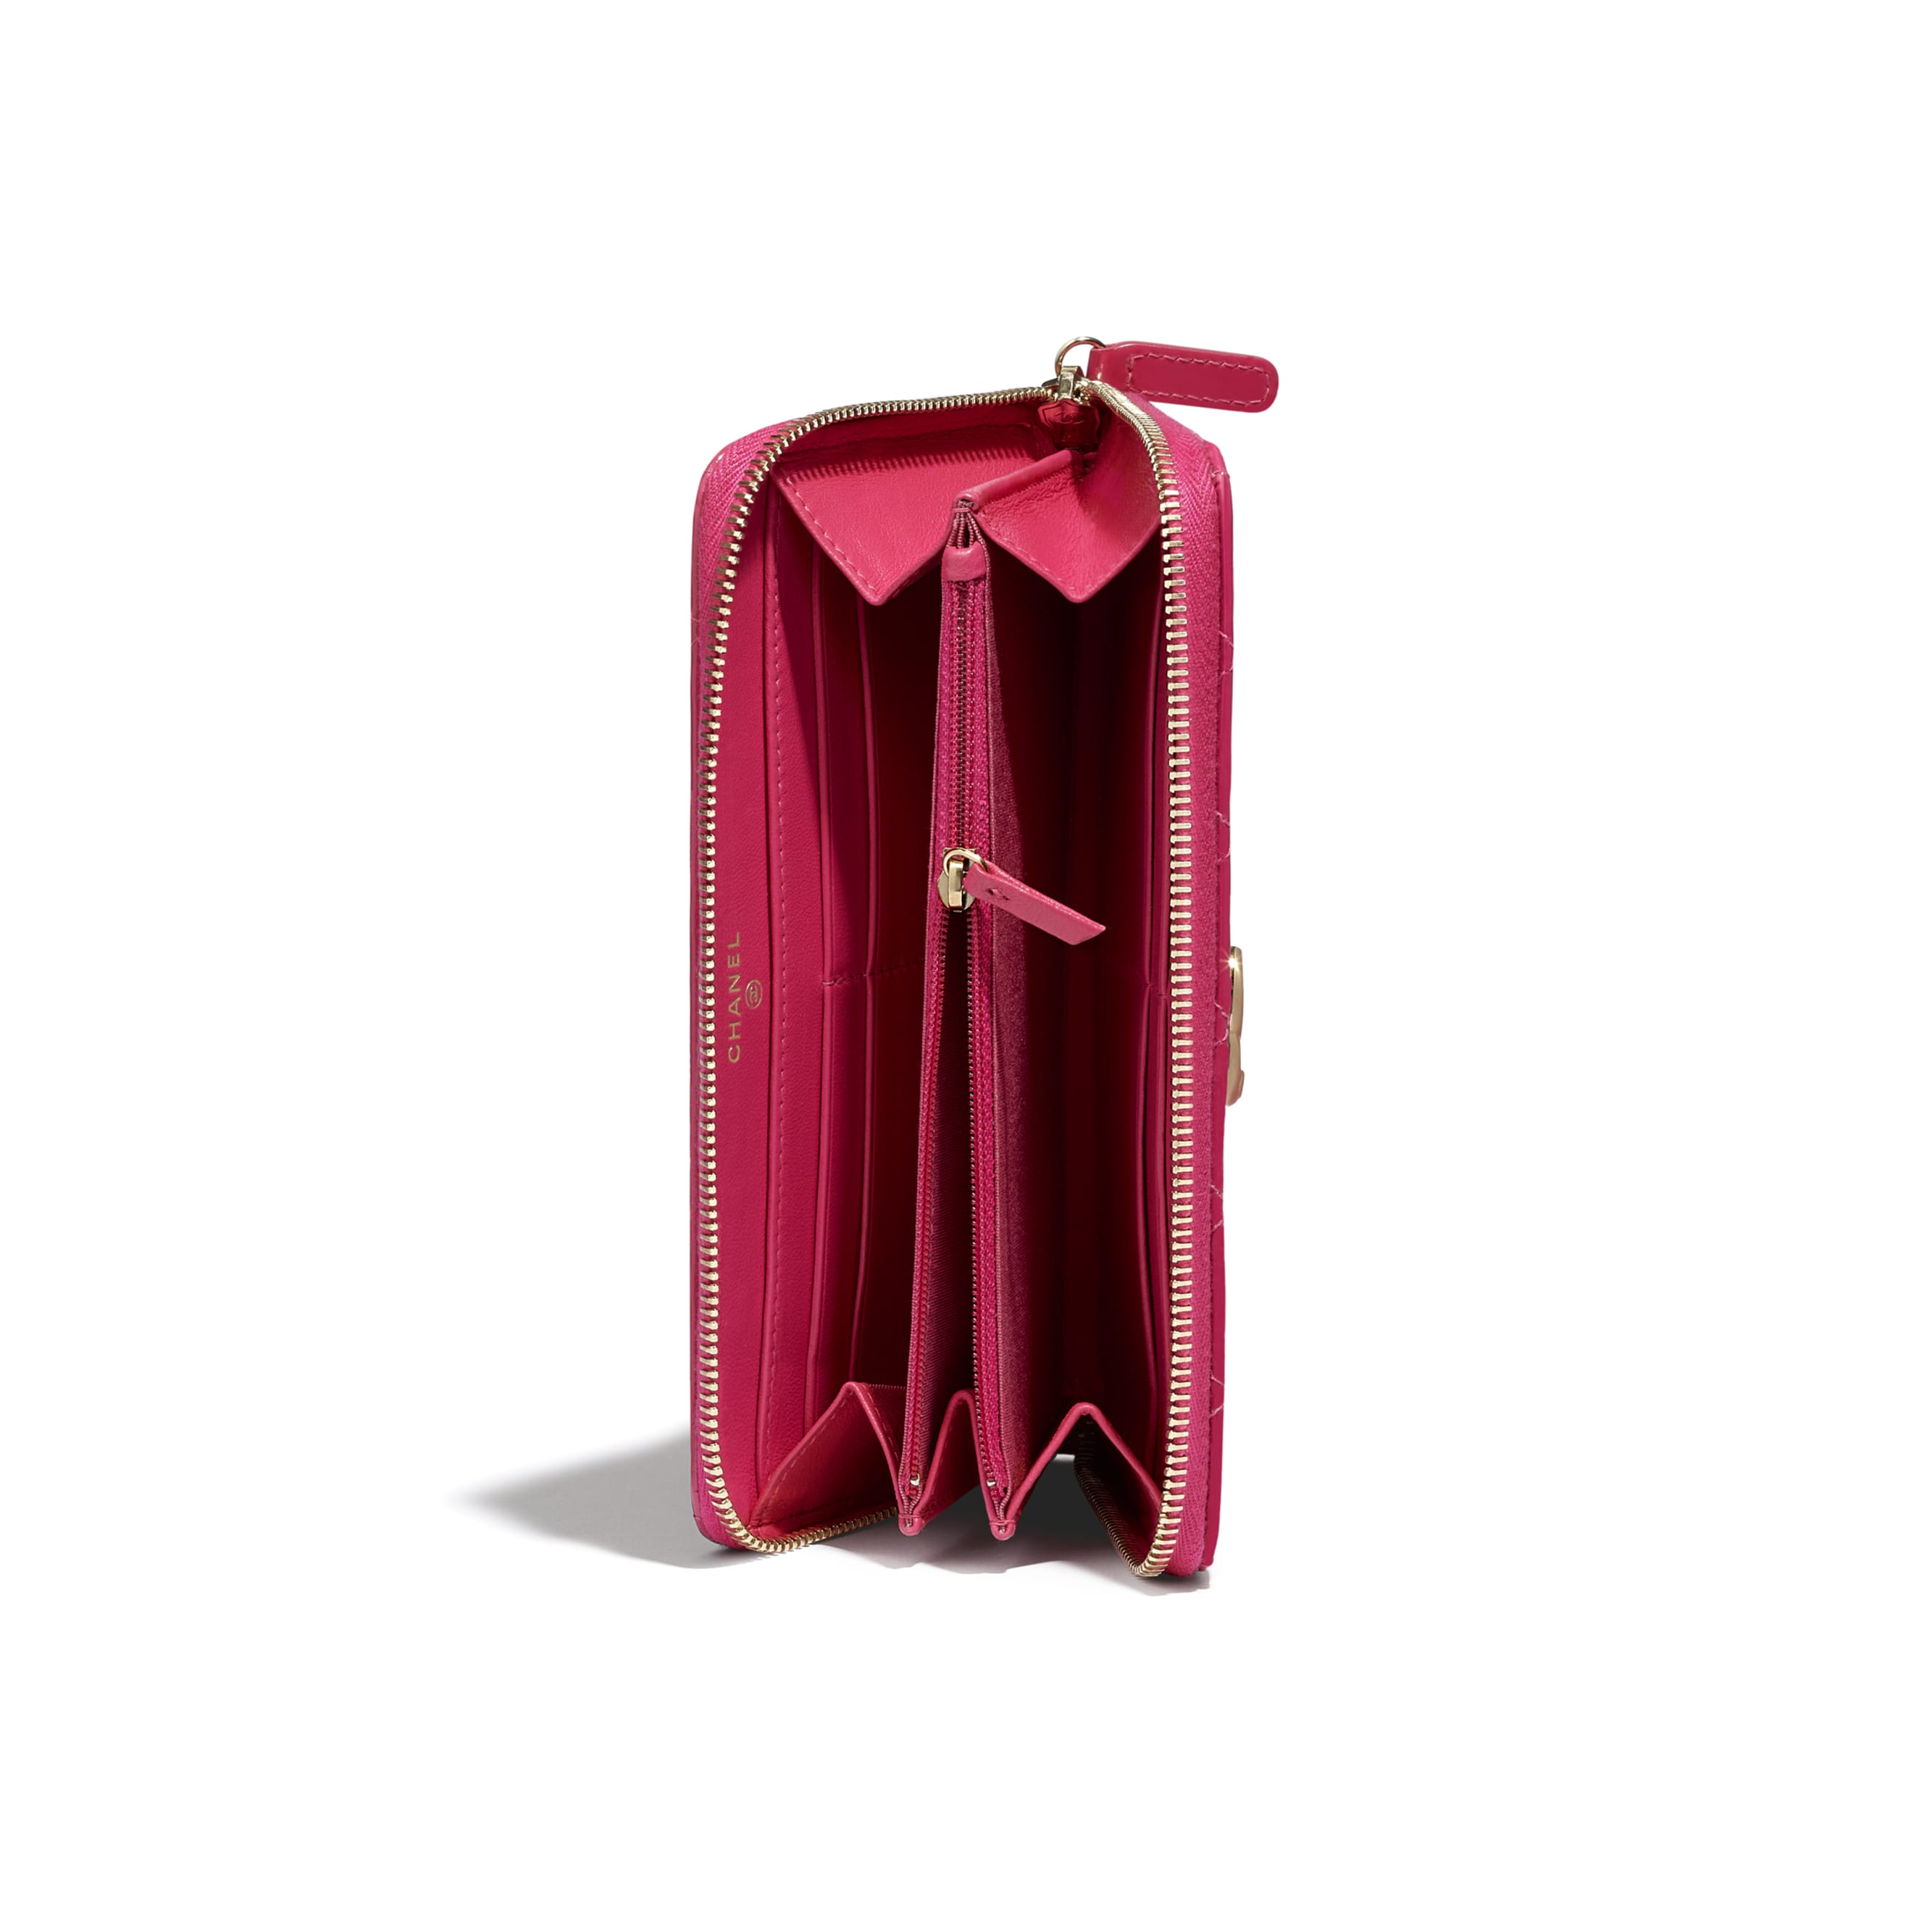 Long Zipped Wallet - Pink - Patent Calfskin, Lambskin & Gold-Tone Metal - CHANEL - Extra view - see standard sized version